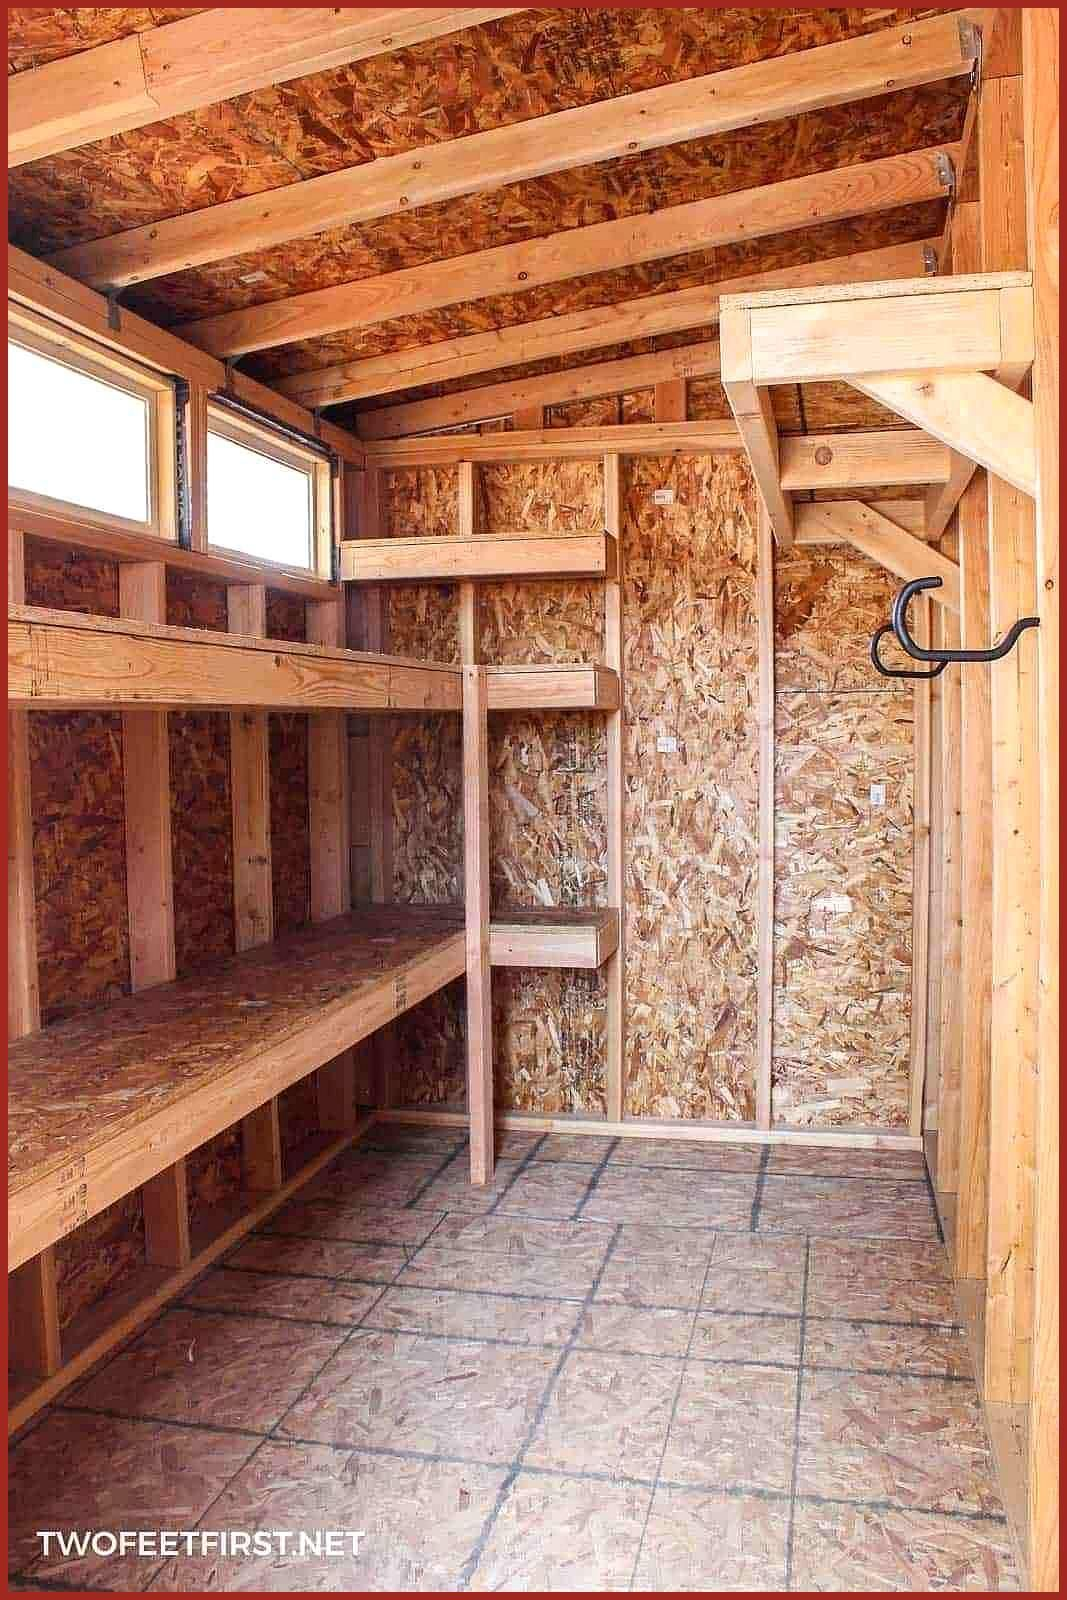 How to build storage shelves in a shed or garage How to build storage shelves Are you looking for a  How to build storage shelves in a shed or garage How to build storage shelves Are you looking for a  nbsp  hellip   #build #garage #shelves #storage #vanlifestorageshelves